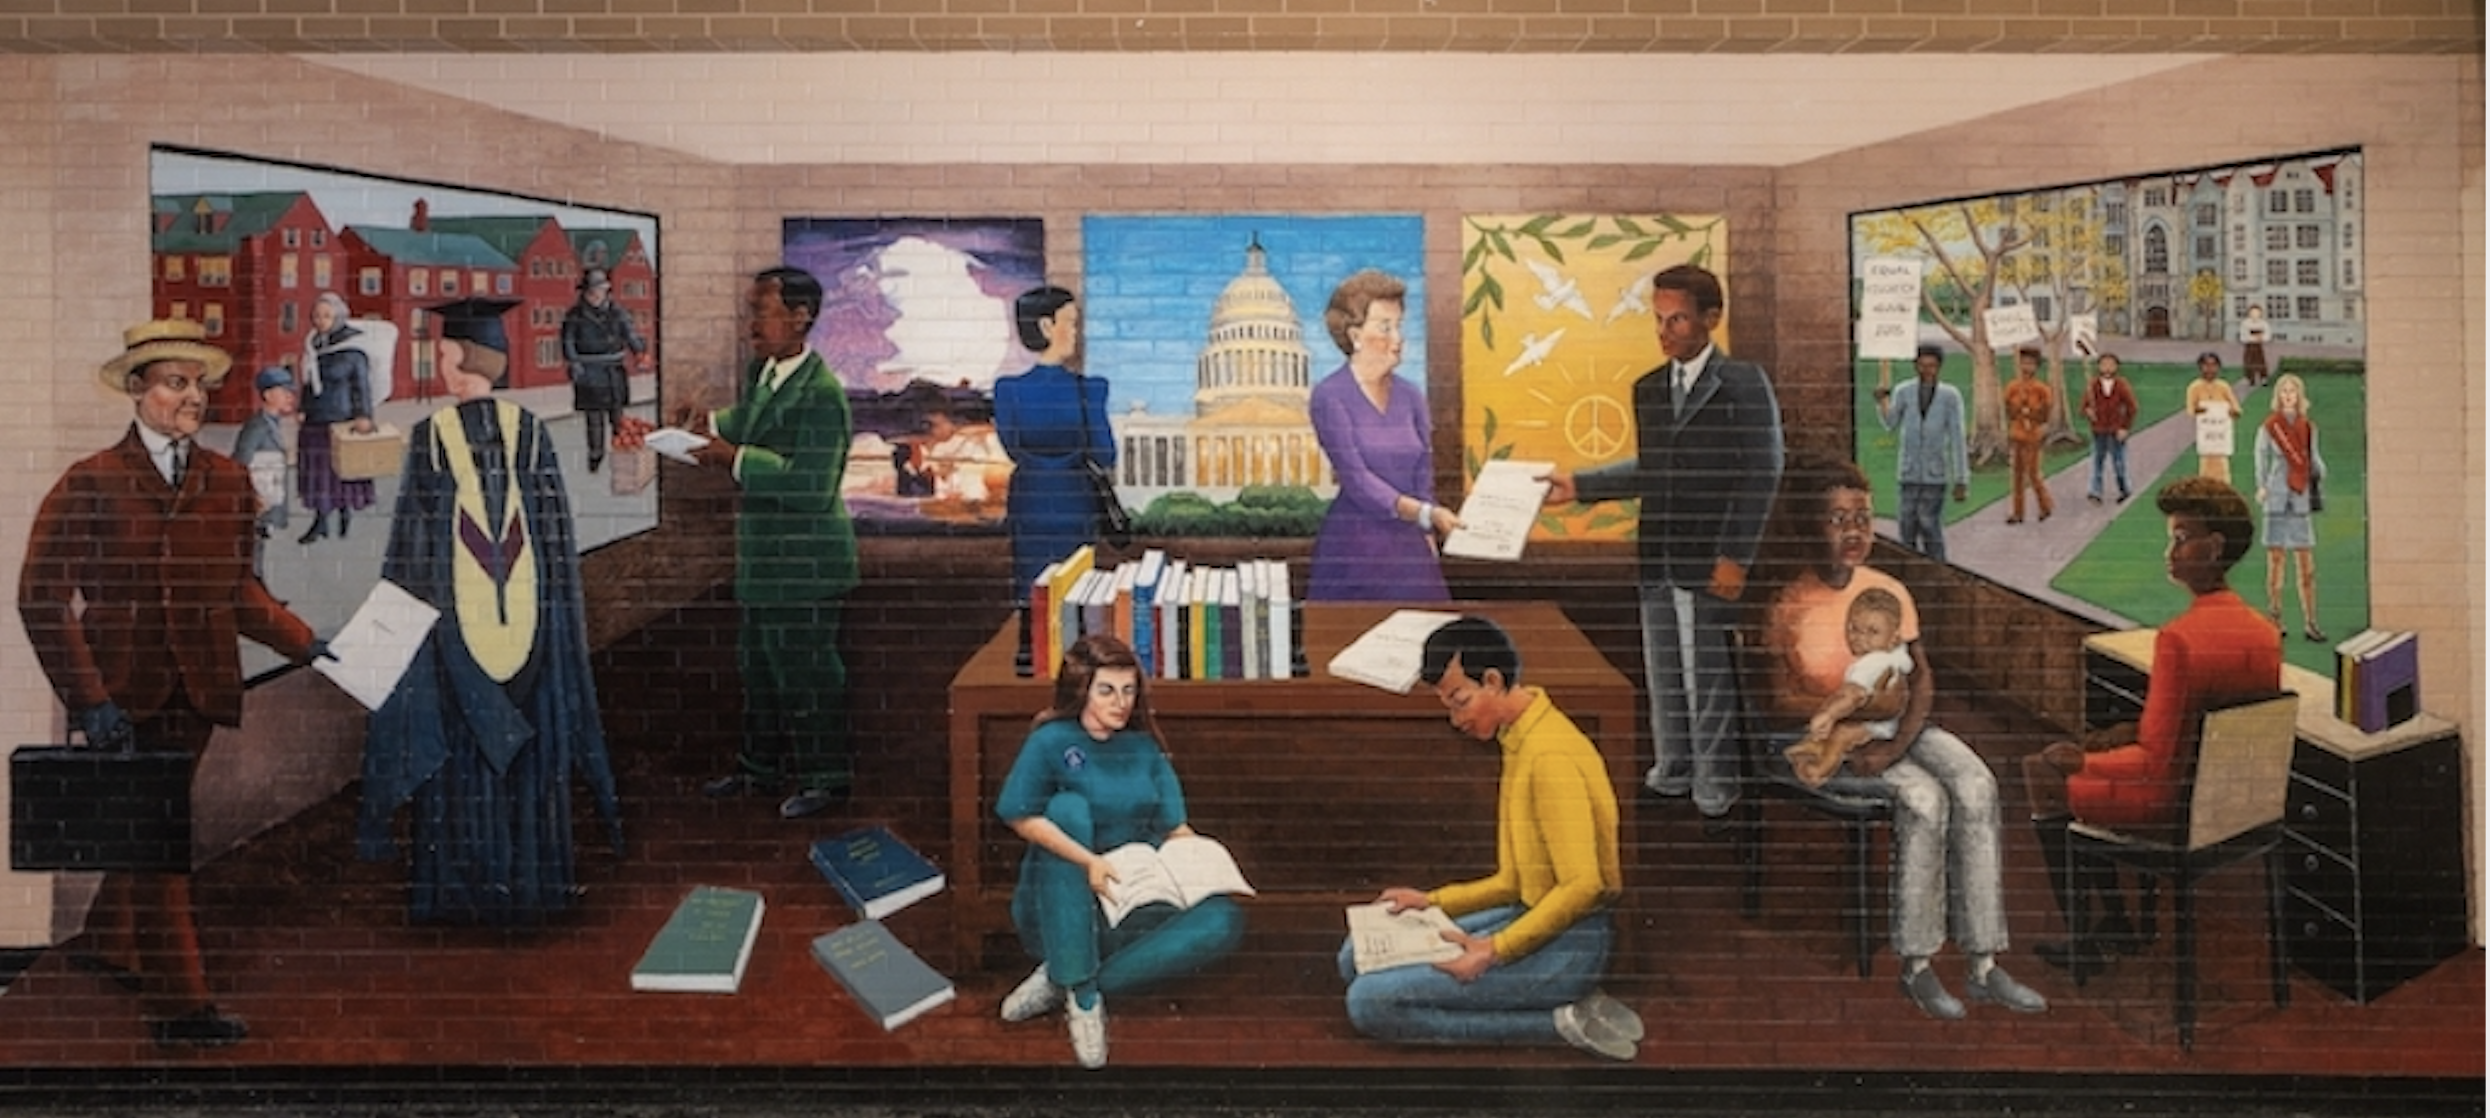 Mural by artist Astrid Fuller from the University of Chicago Office of Civic Engagement. Mural depicts various groups of people reading and talking in a library setting.